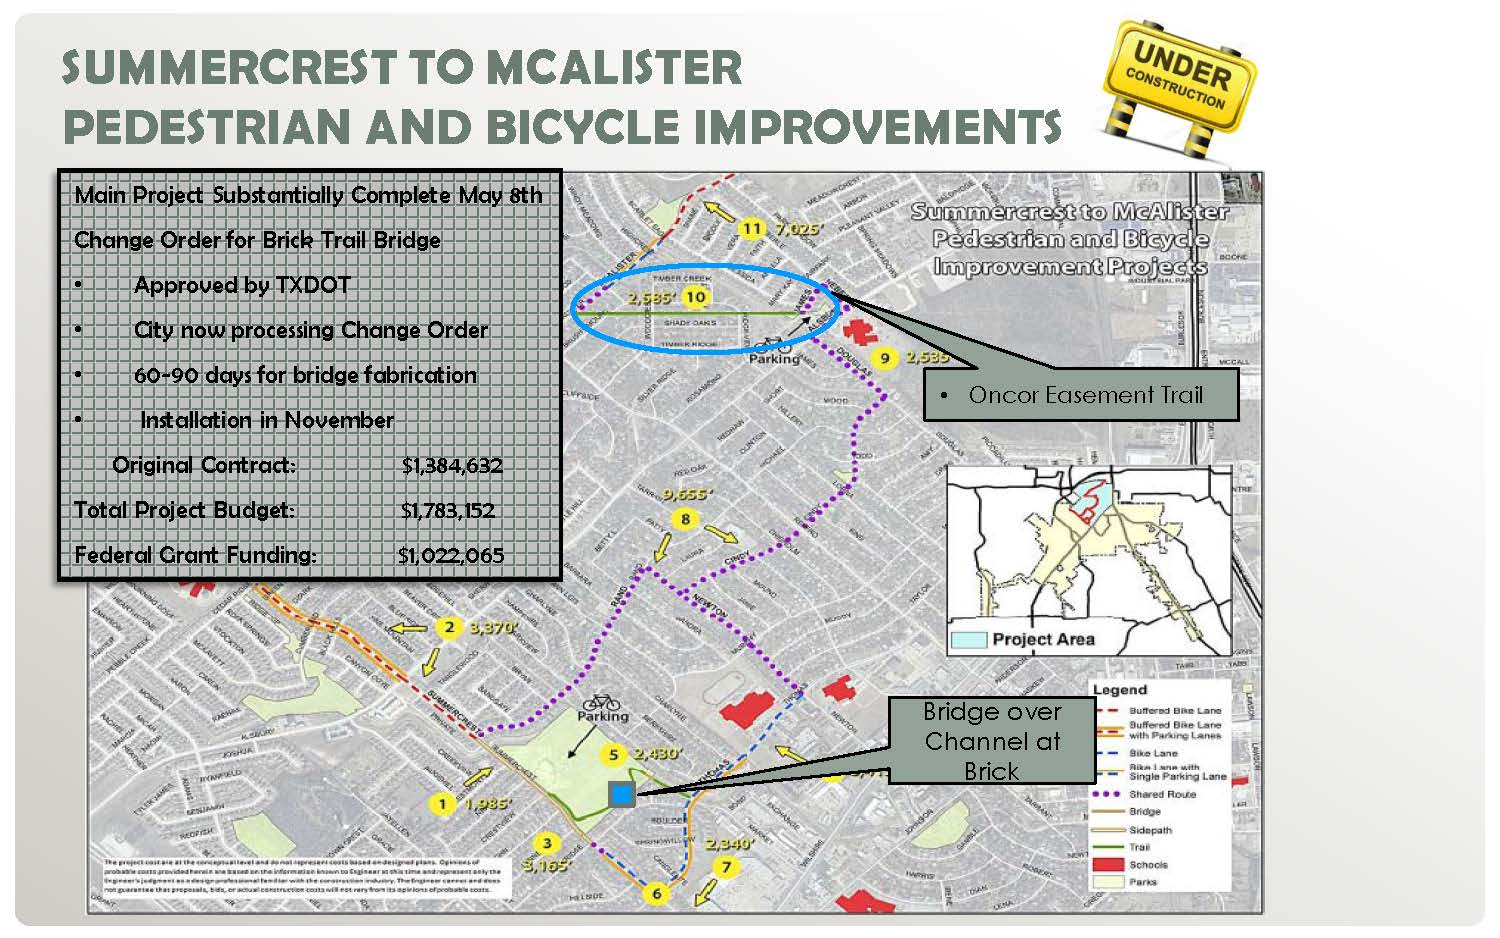 Summercrest to McAlister map